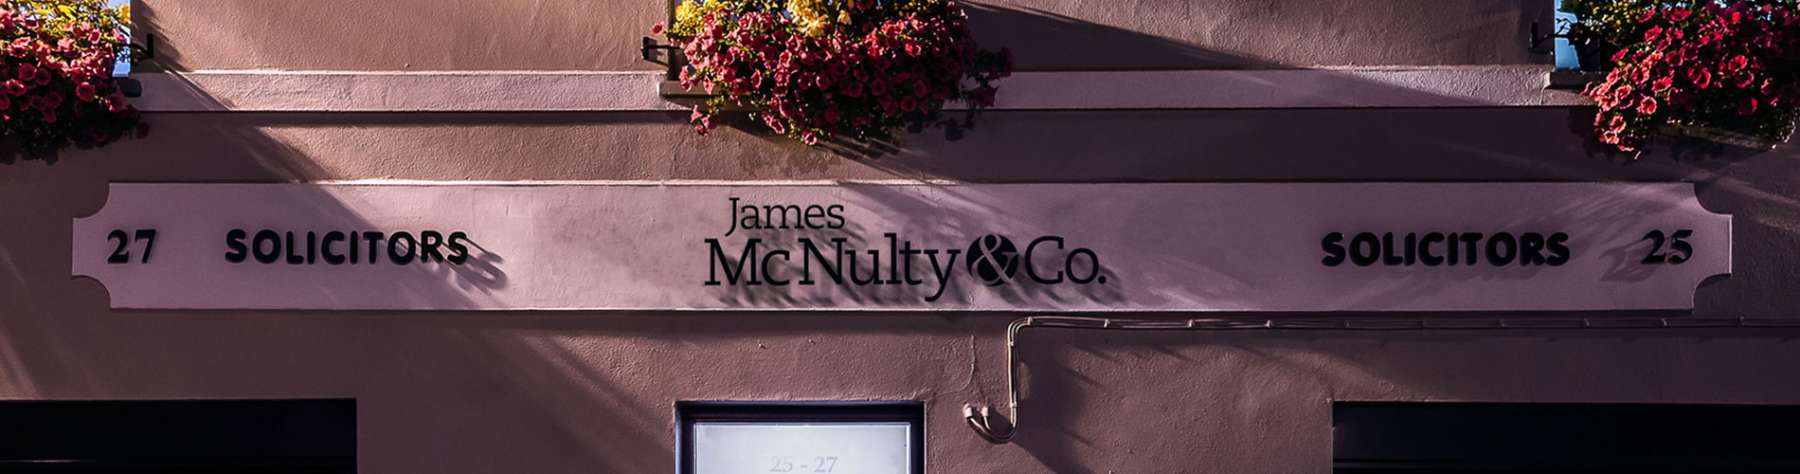 James McNulty Solicitors